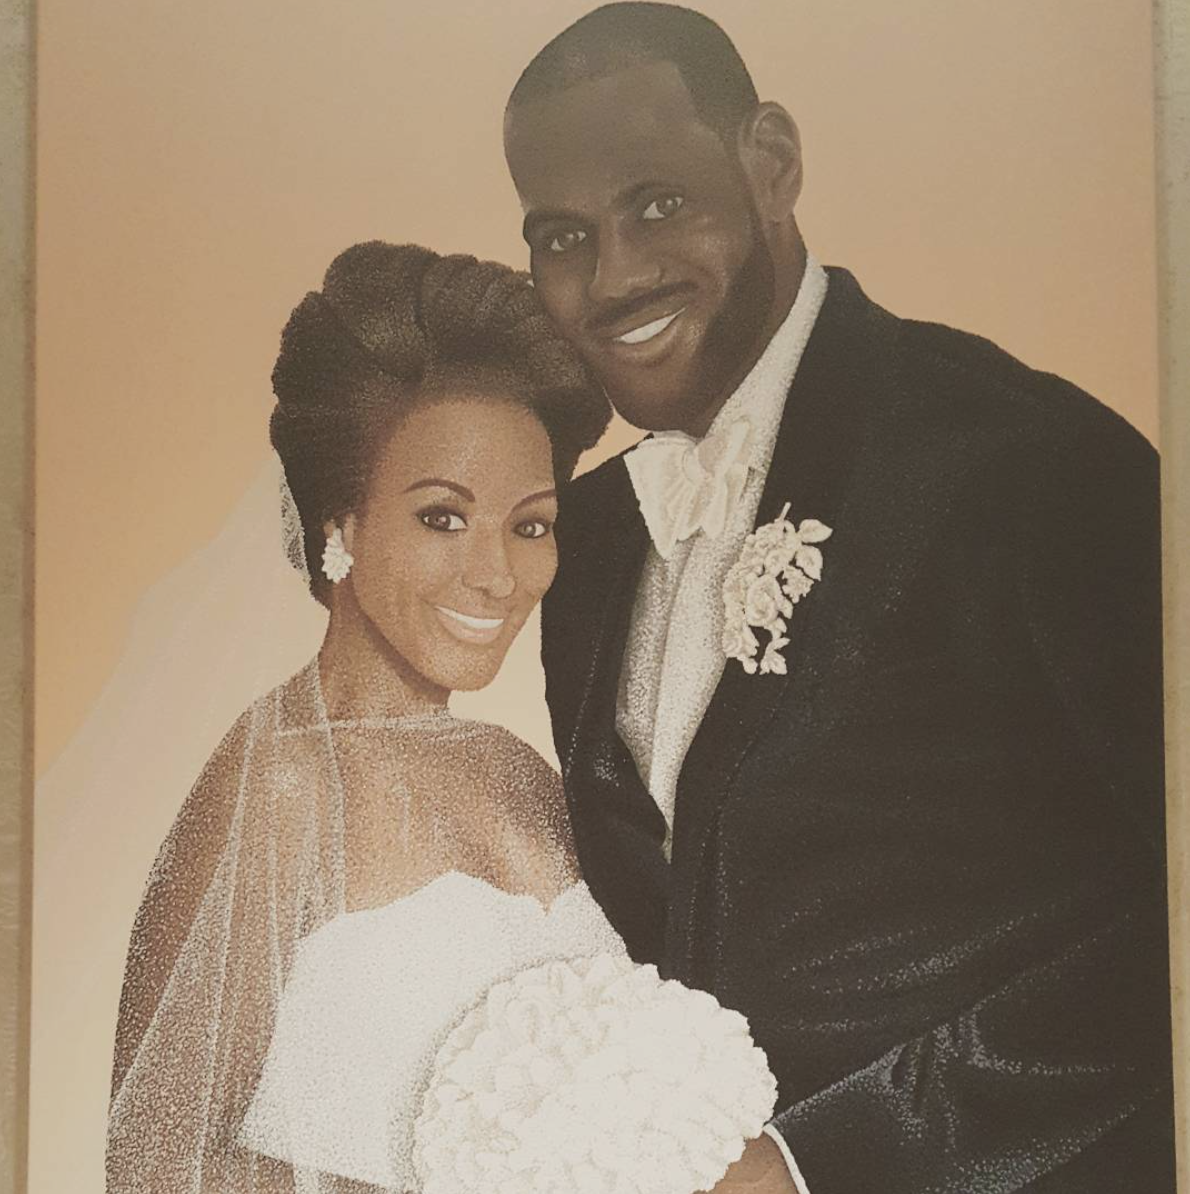 f5f0629b25f9 23 Times LeBron James and His Wife Savannah Were the Perfect Pair ...